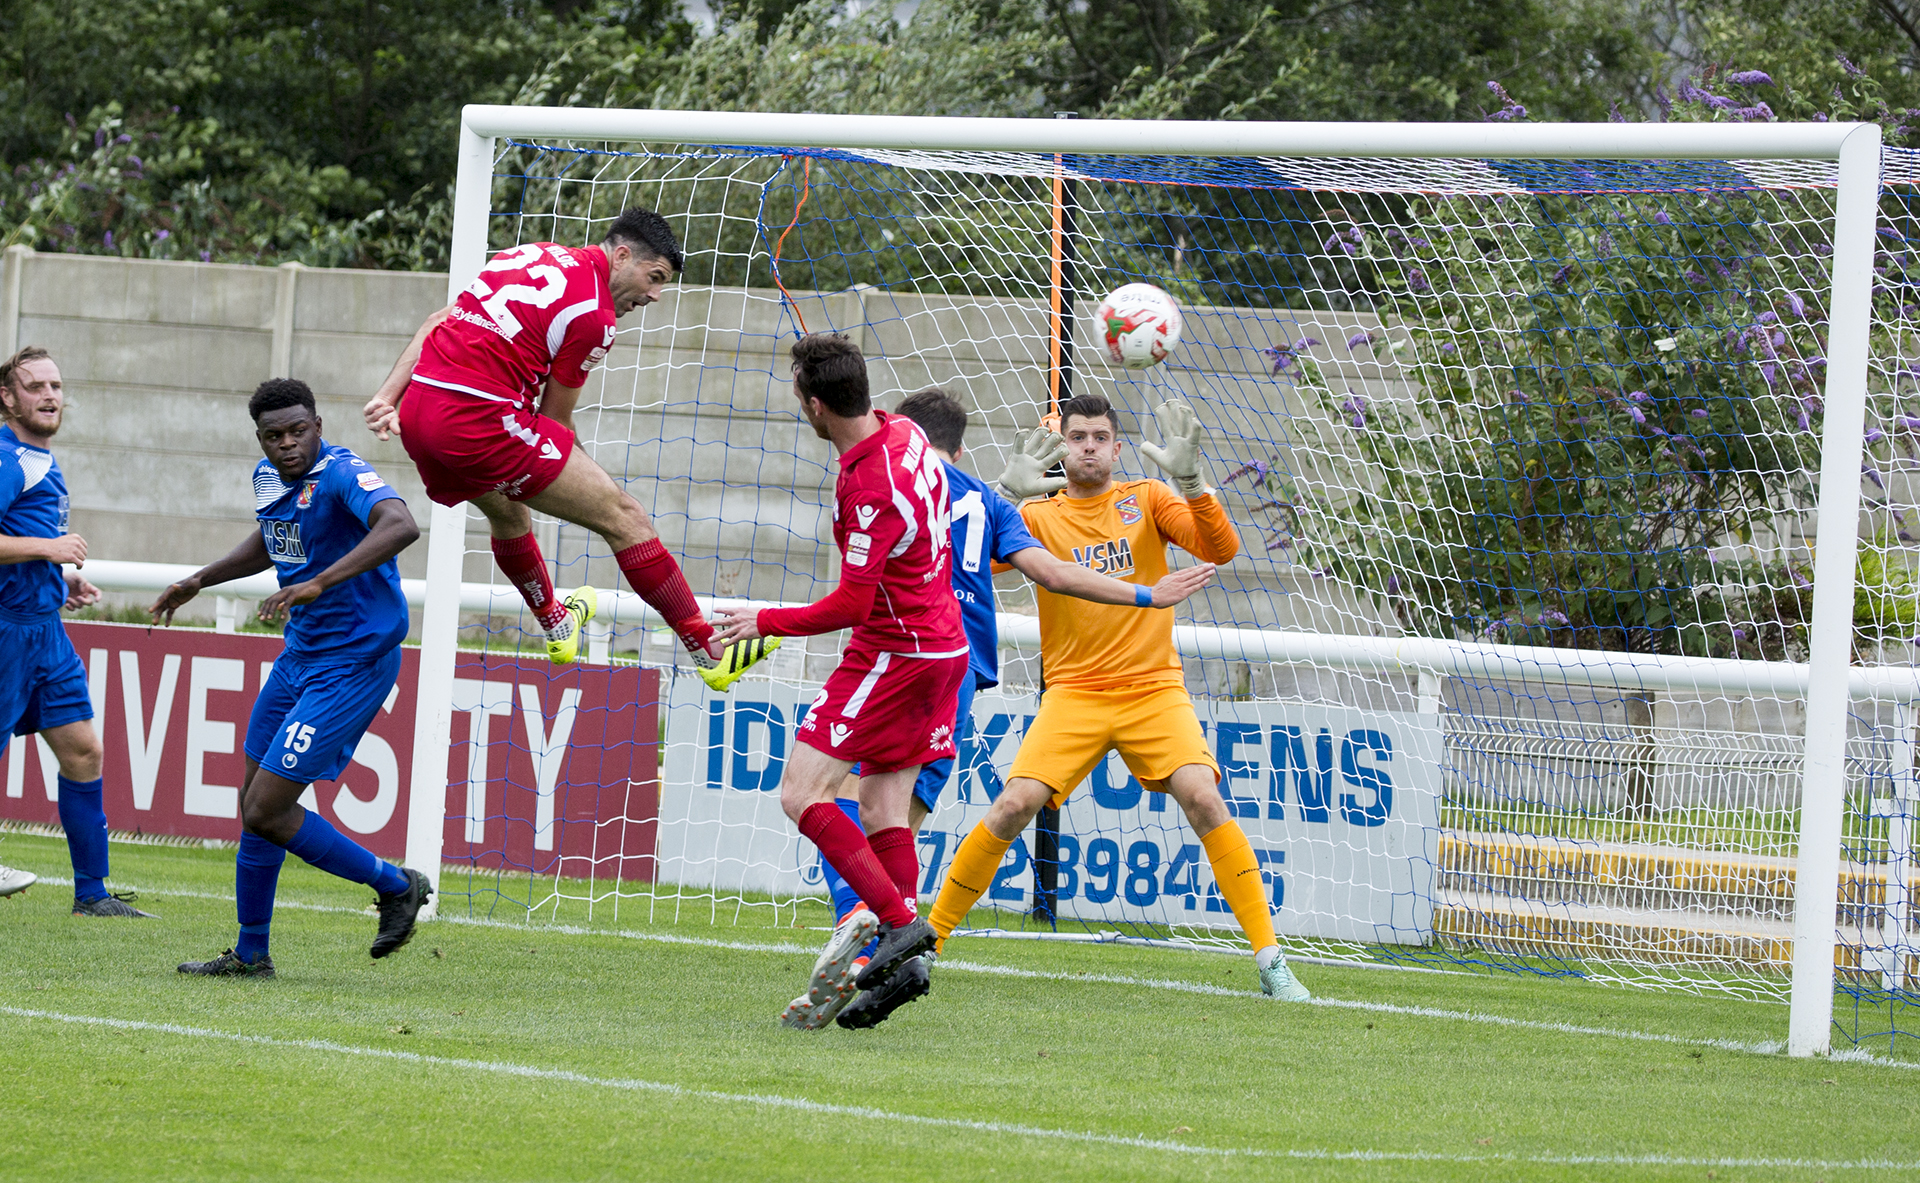 Michael Wilde sees his first half header go wide - © NCM Media